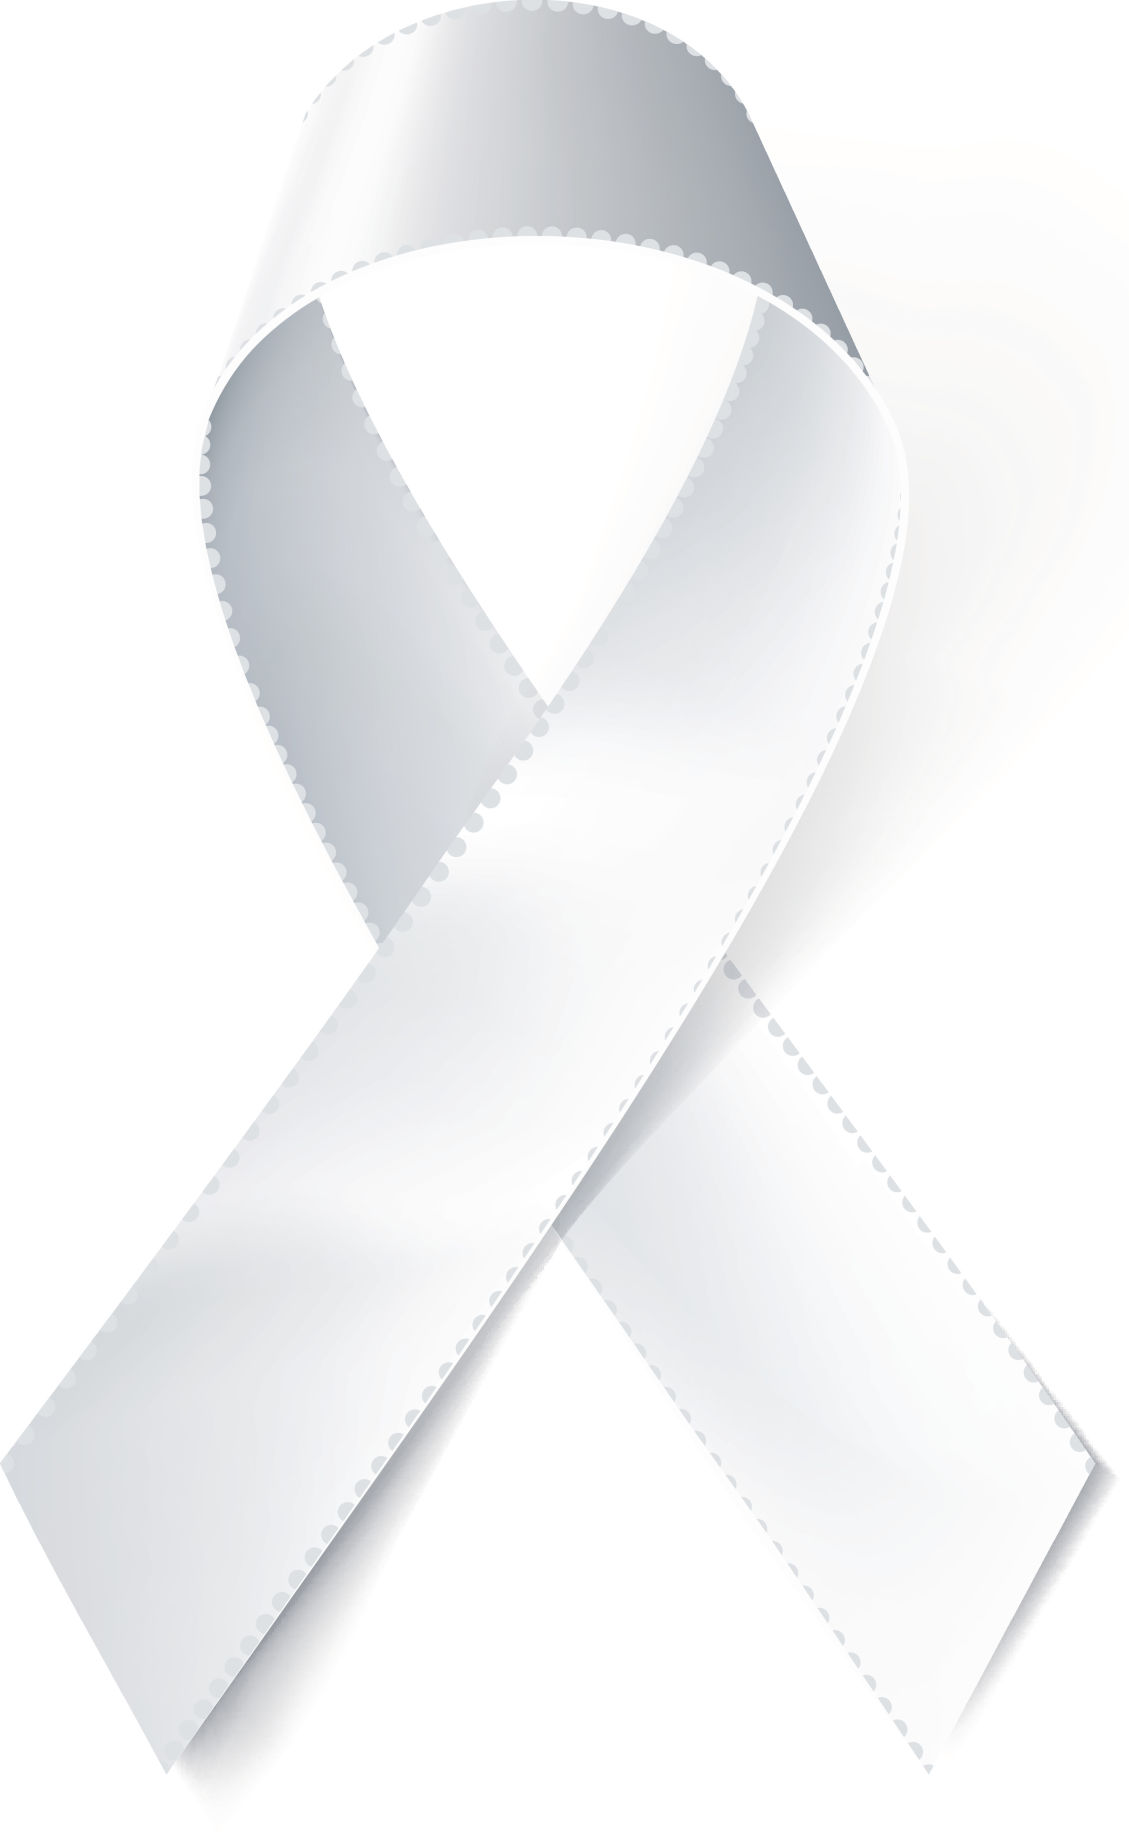 White Ribbon Week raises awereness of domestic violence | Local News ...